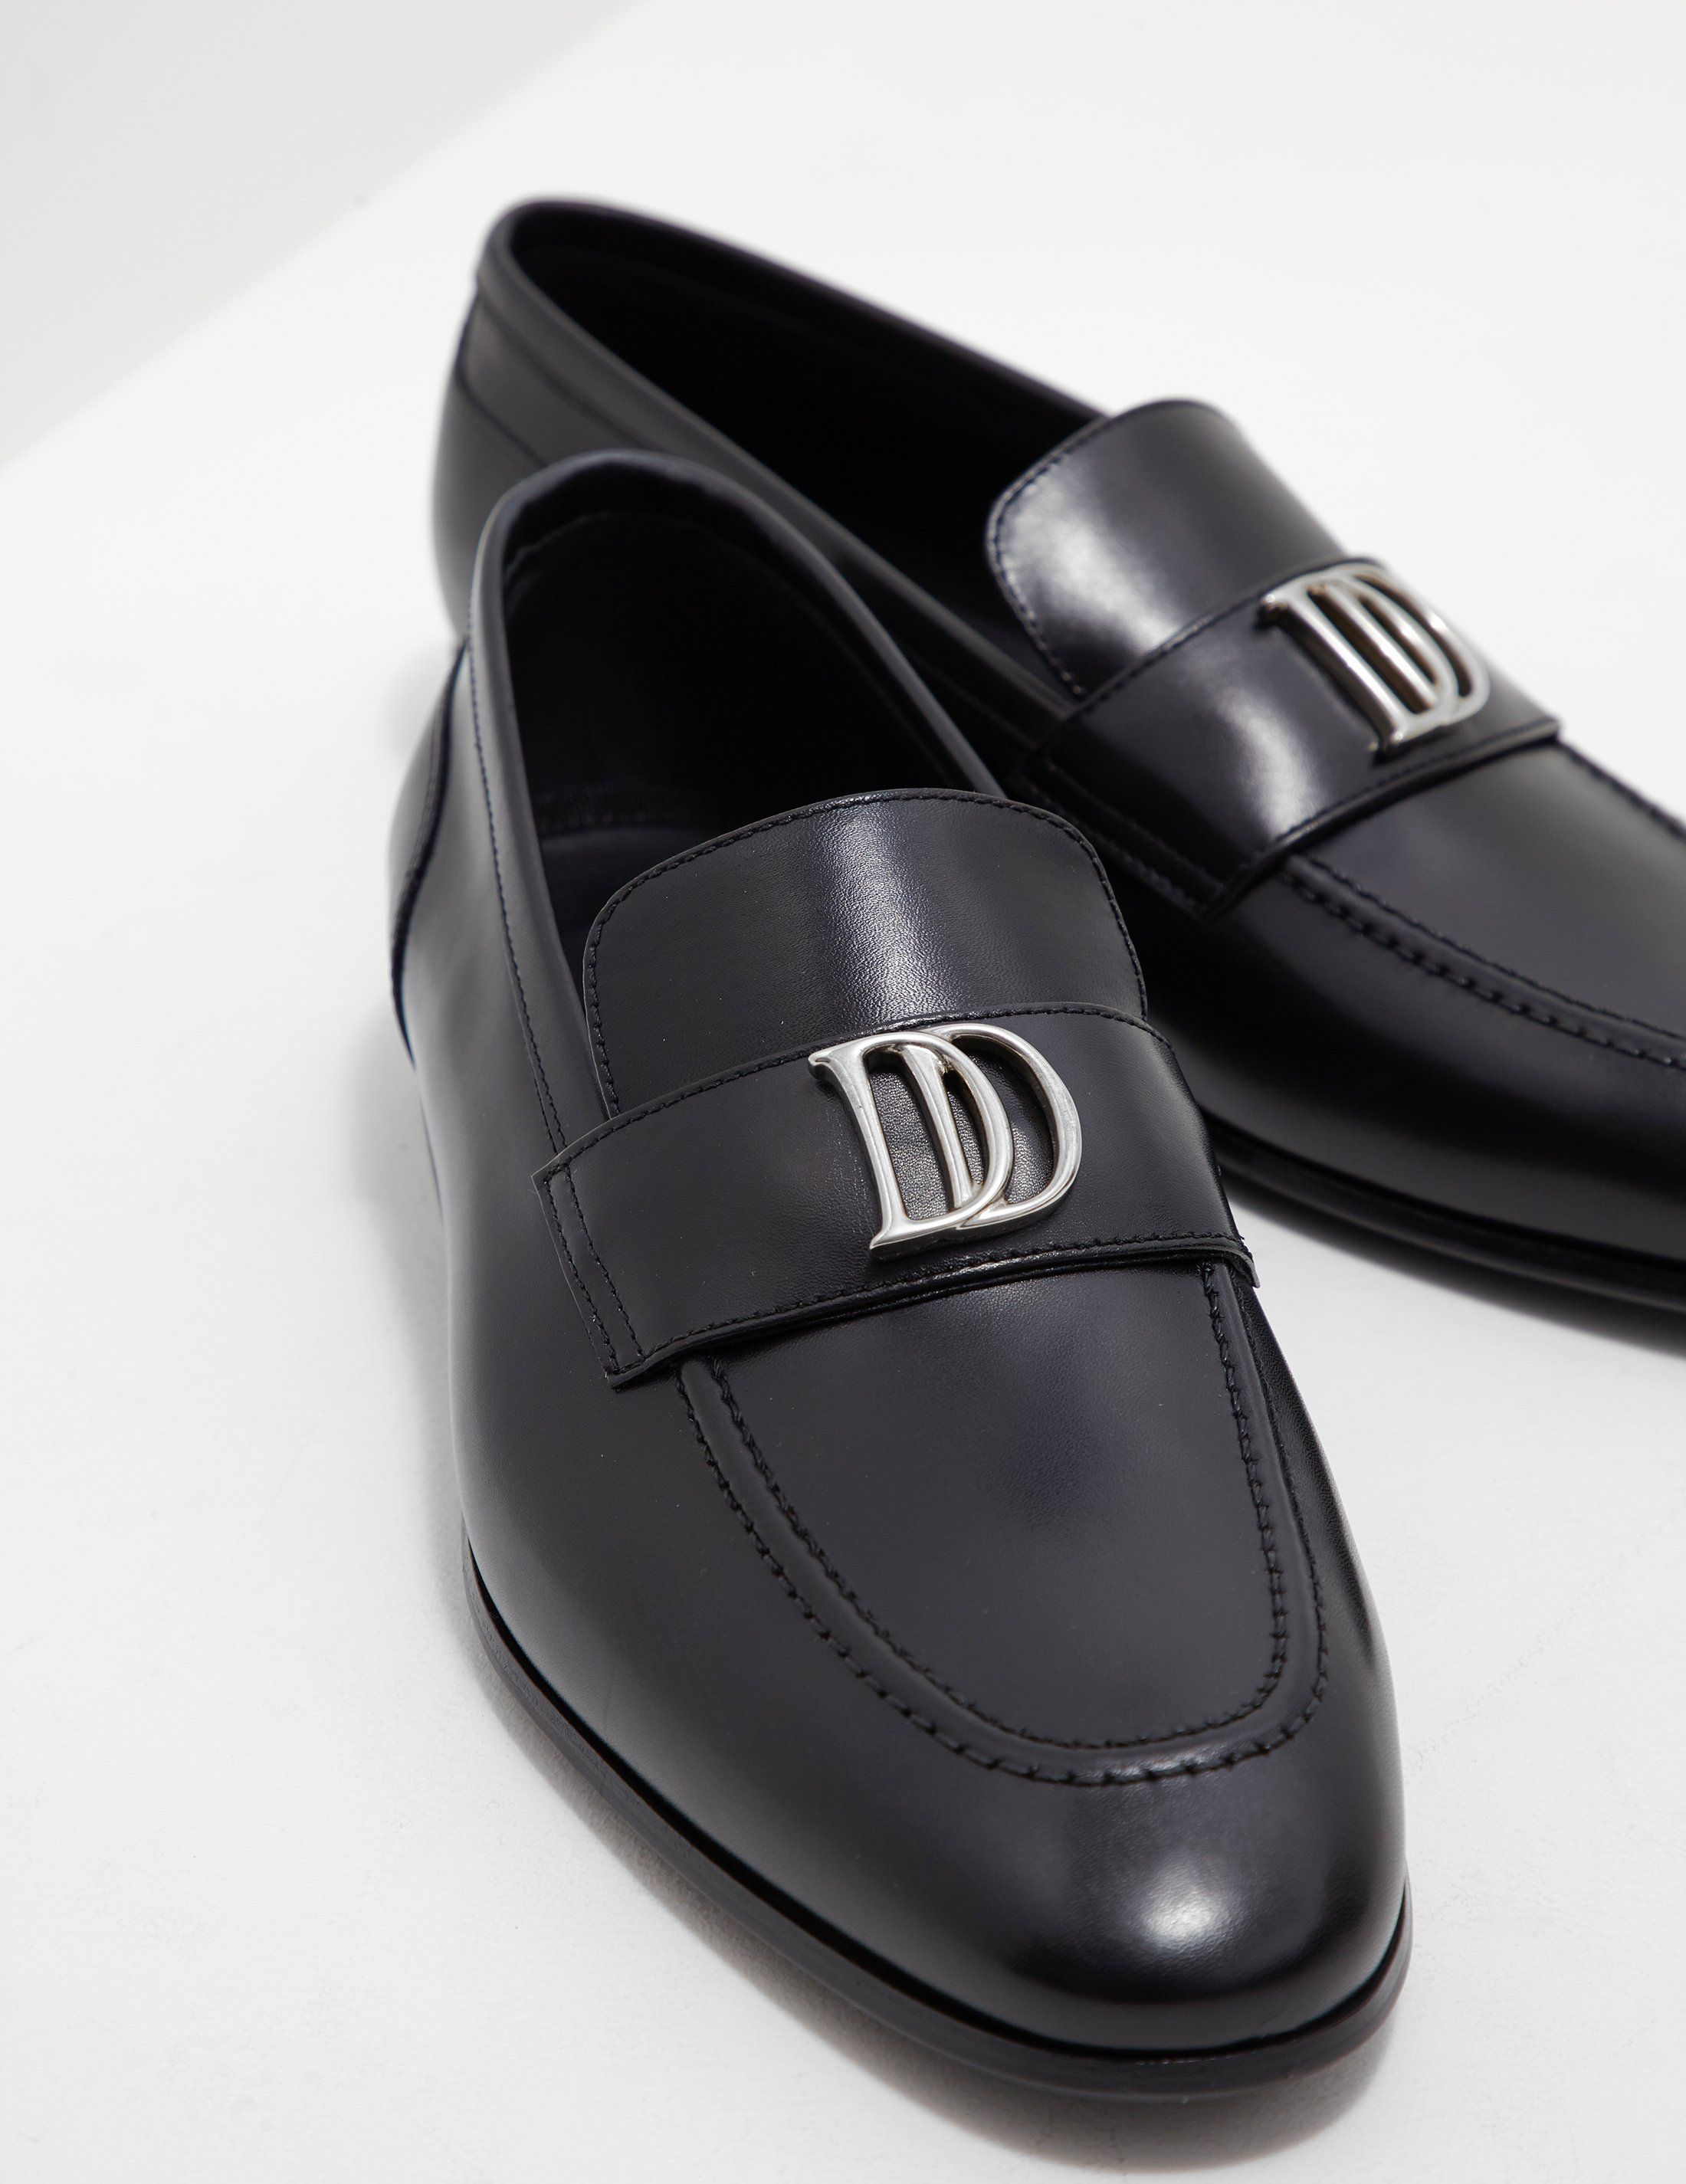 Dsquared2 Loafer - Online Exclusive